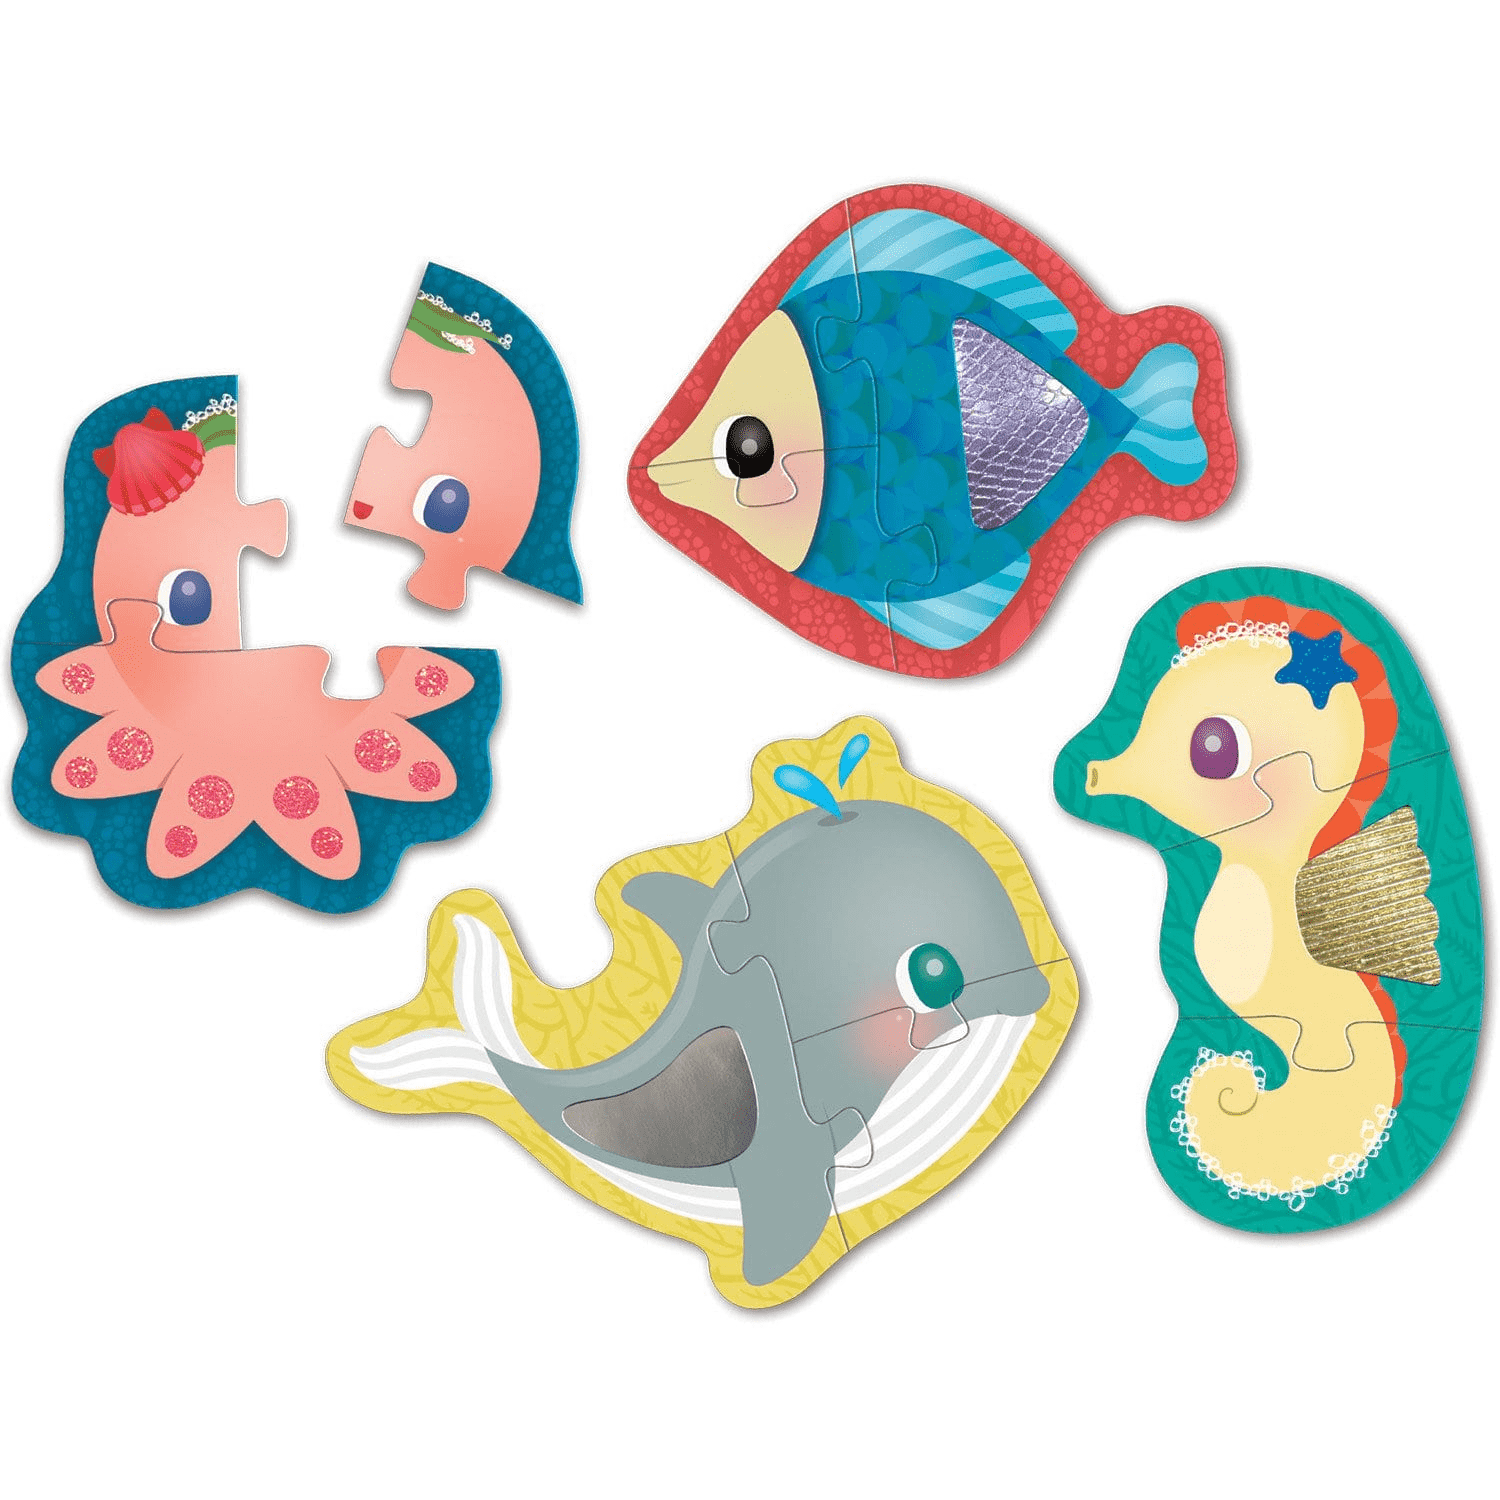 Under The Sea My First Touch & Feel Puzzles My First Touch & Feel Puzzles Mudpuppy